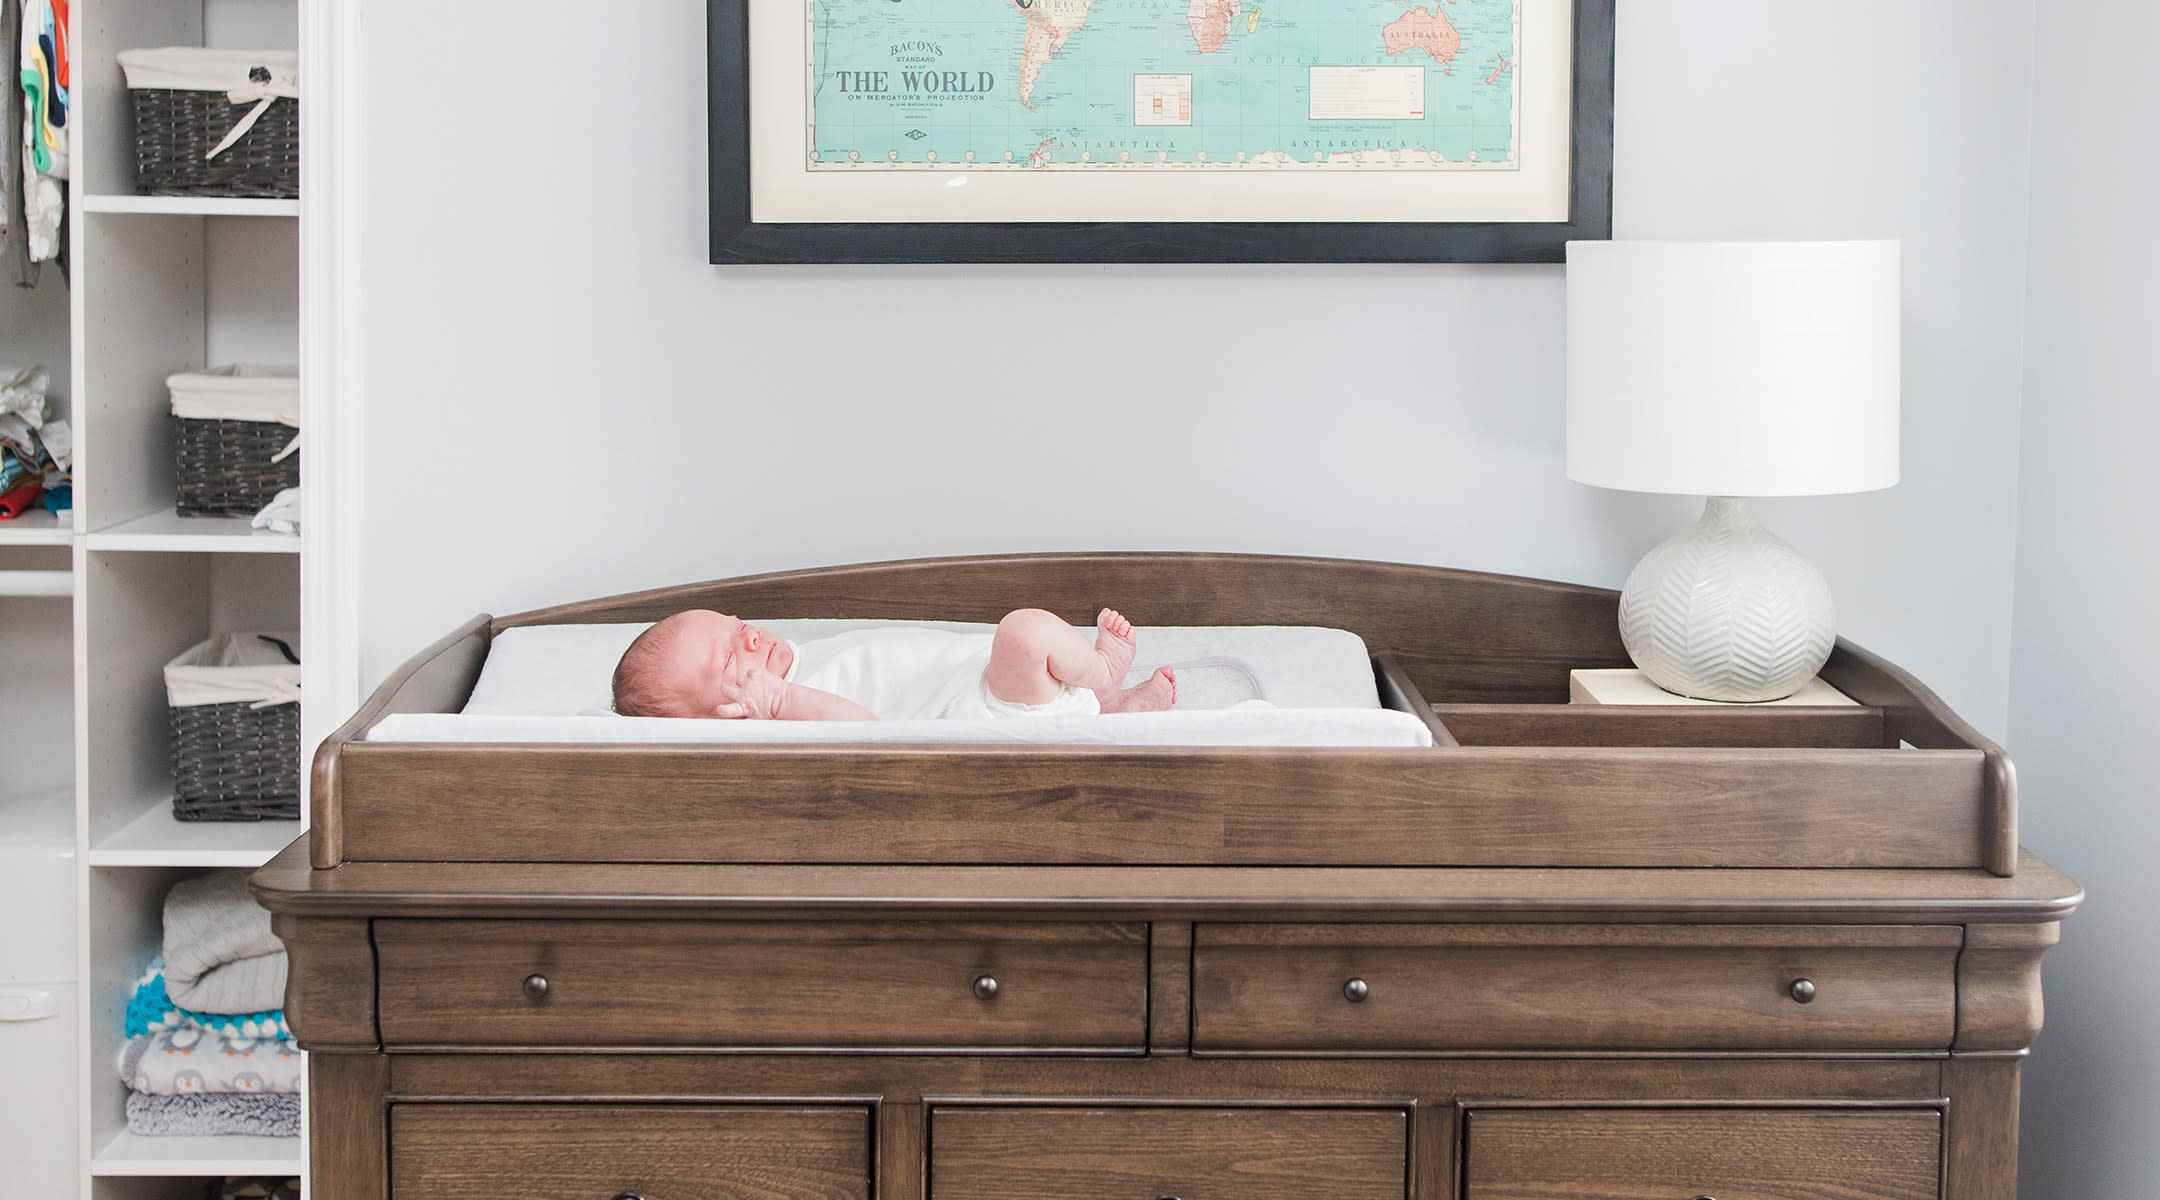 newborn baby on changing table